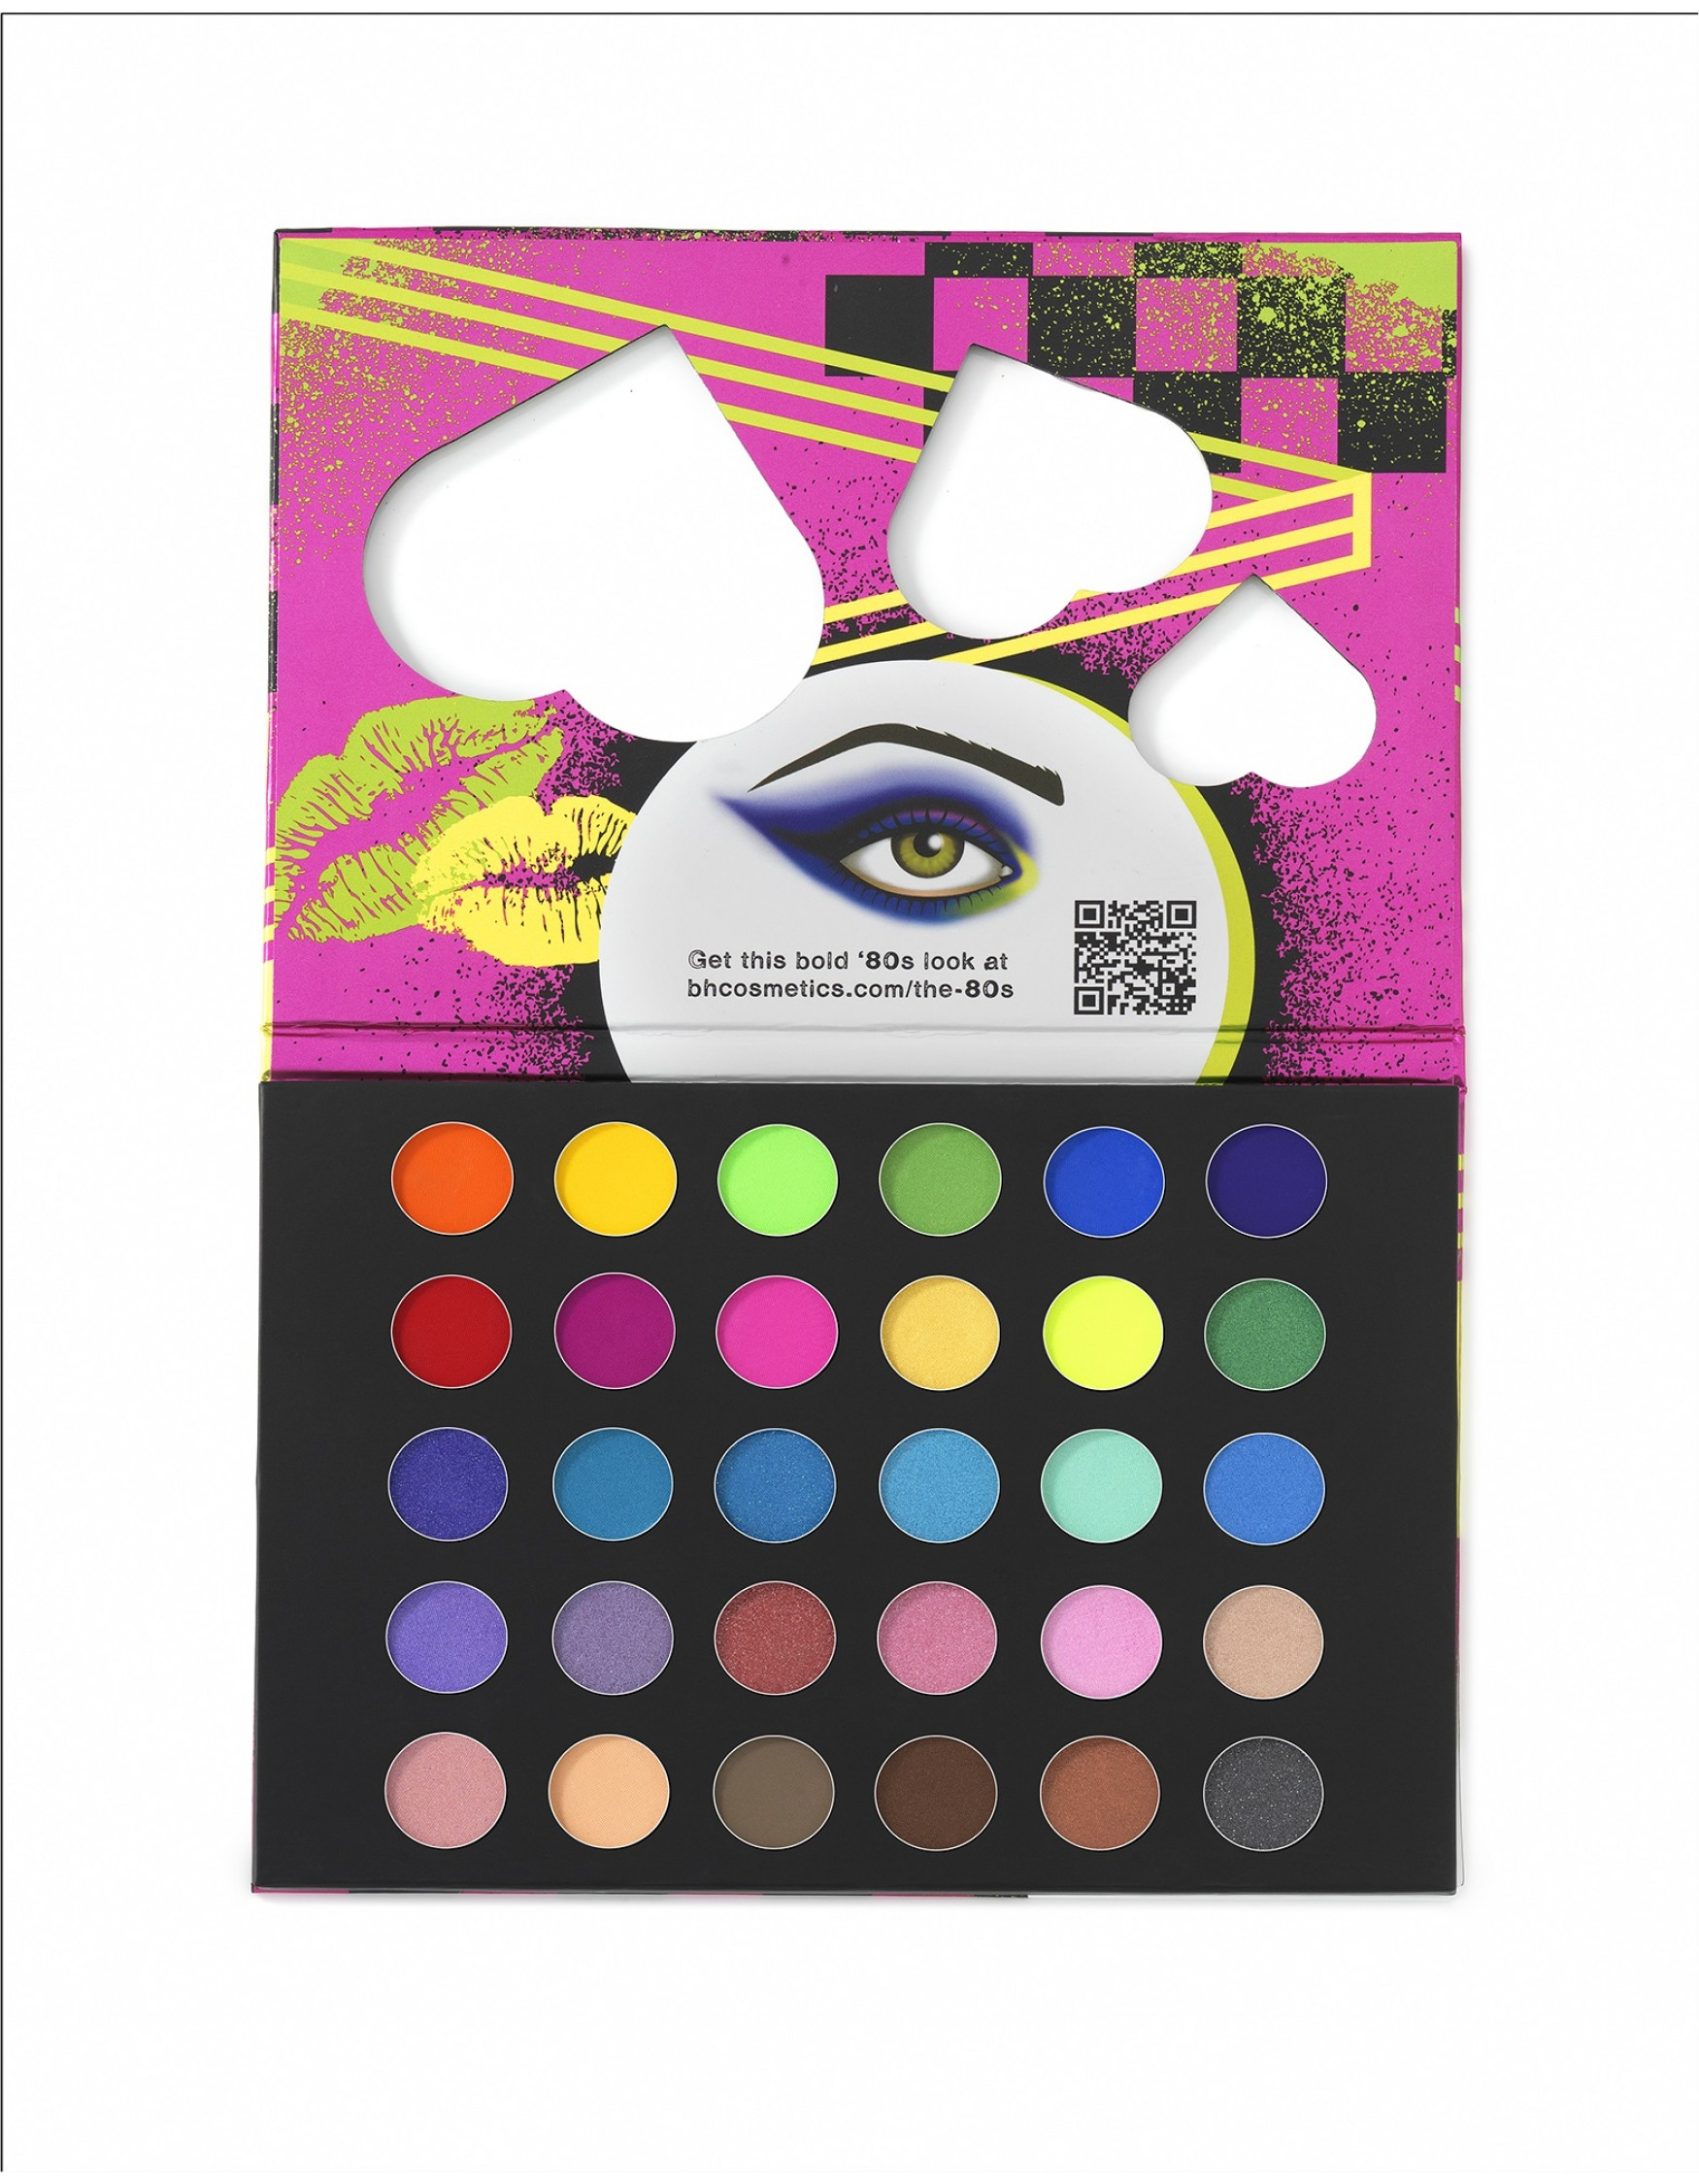 Bh Cosmetics Eyes on the 80\'s Palette